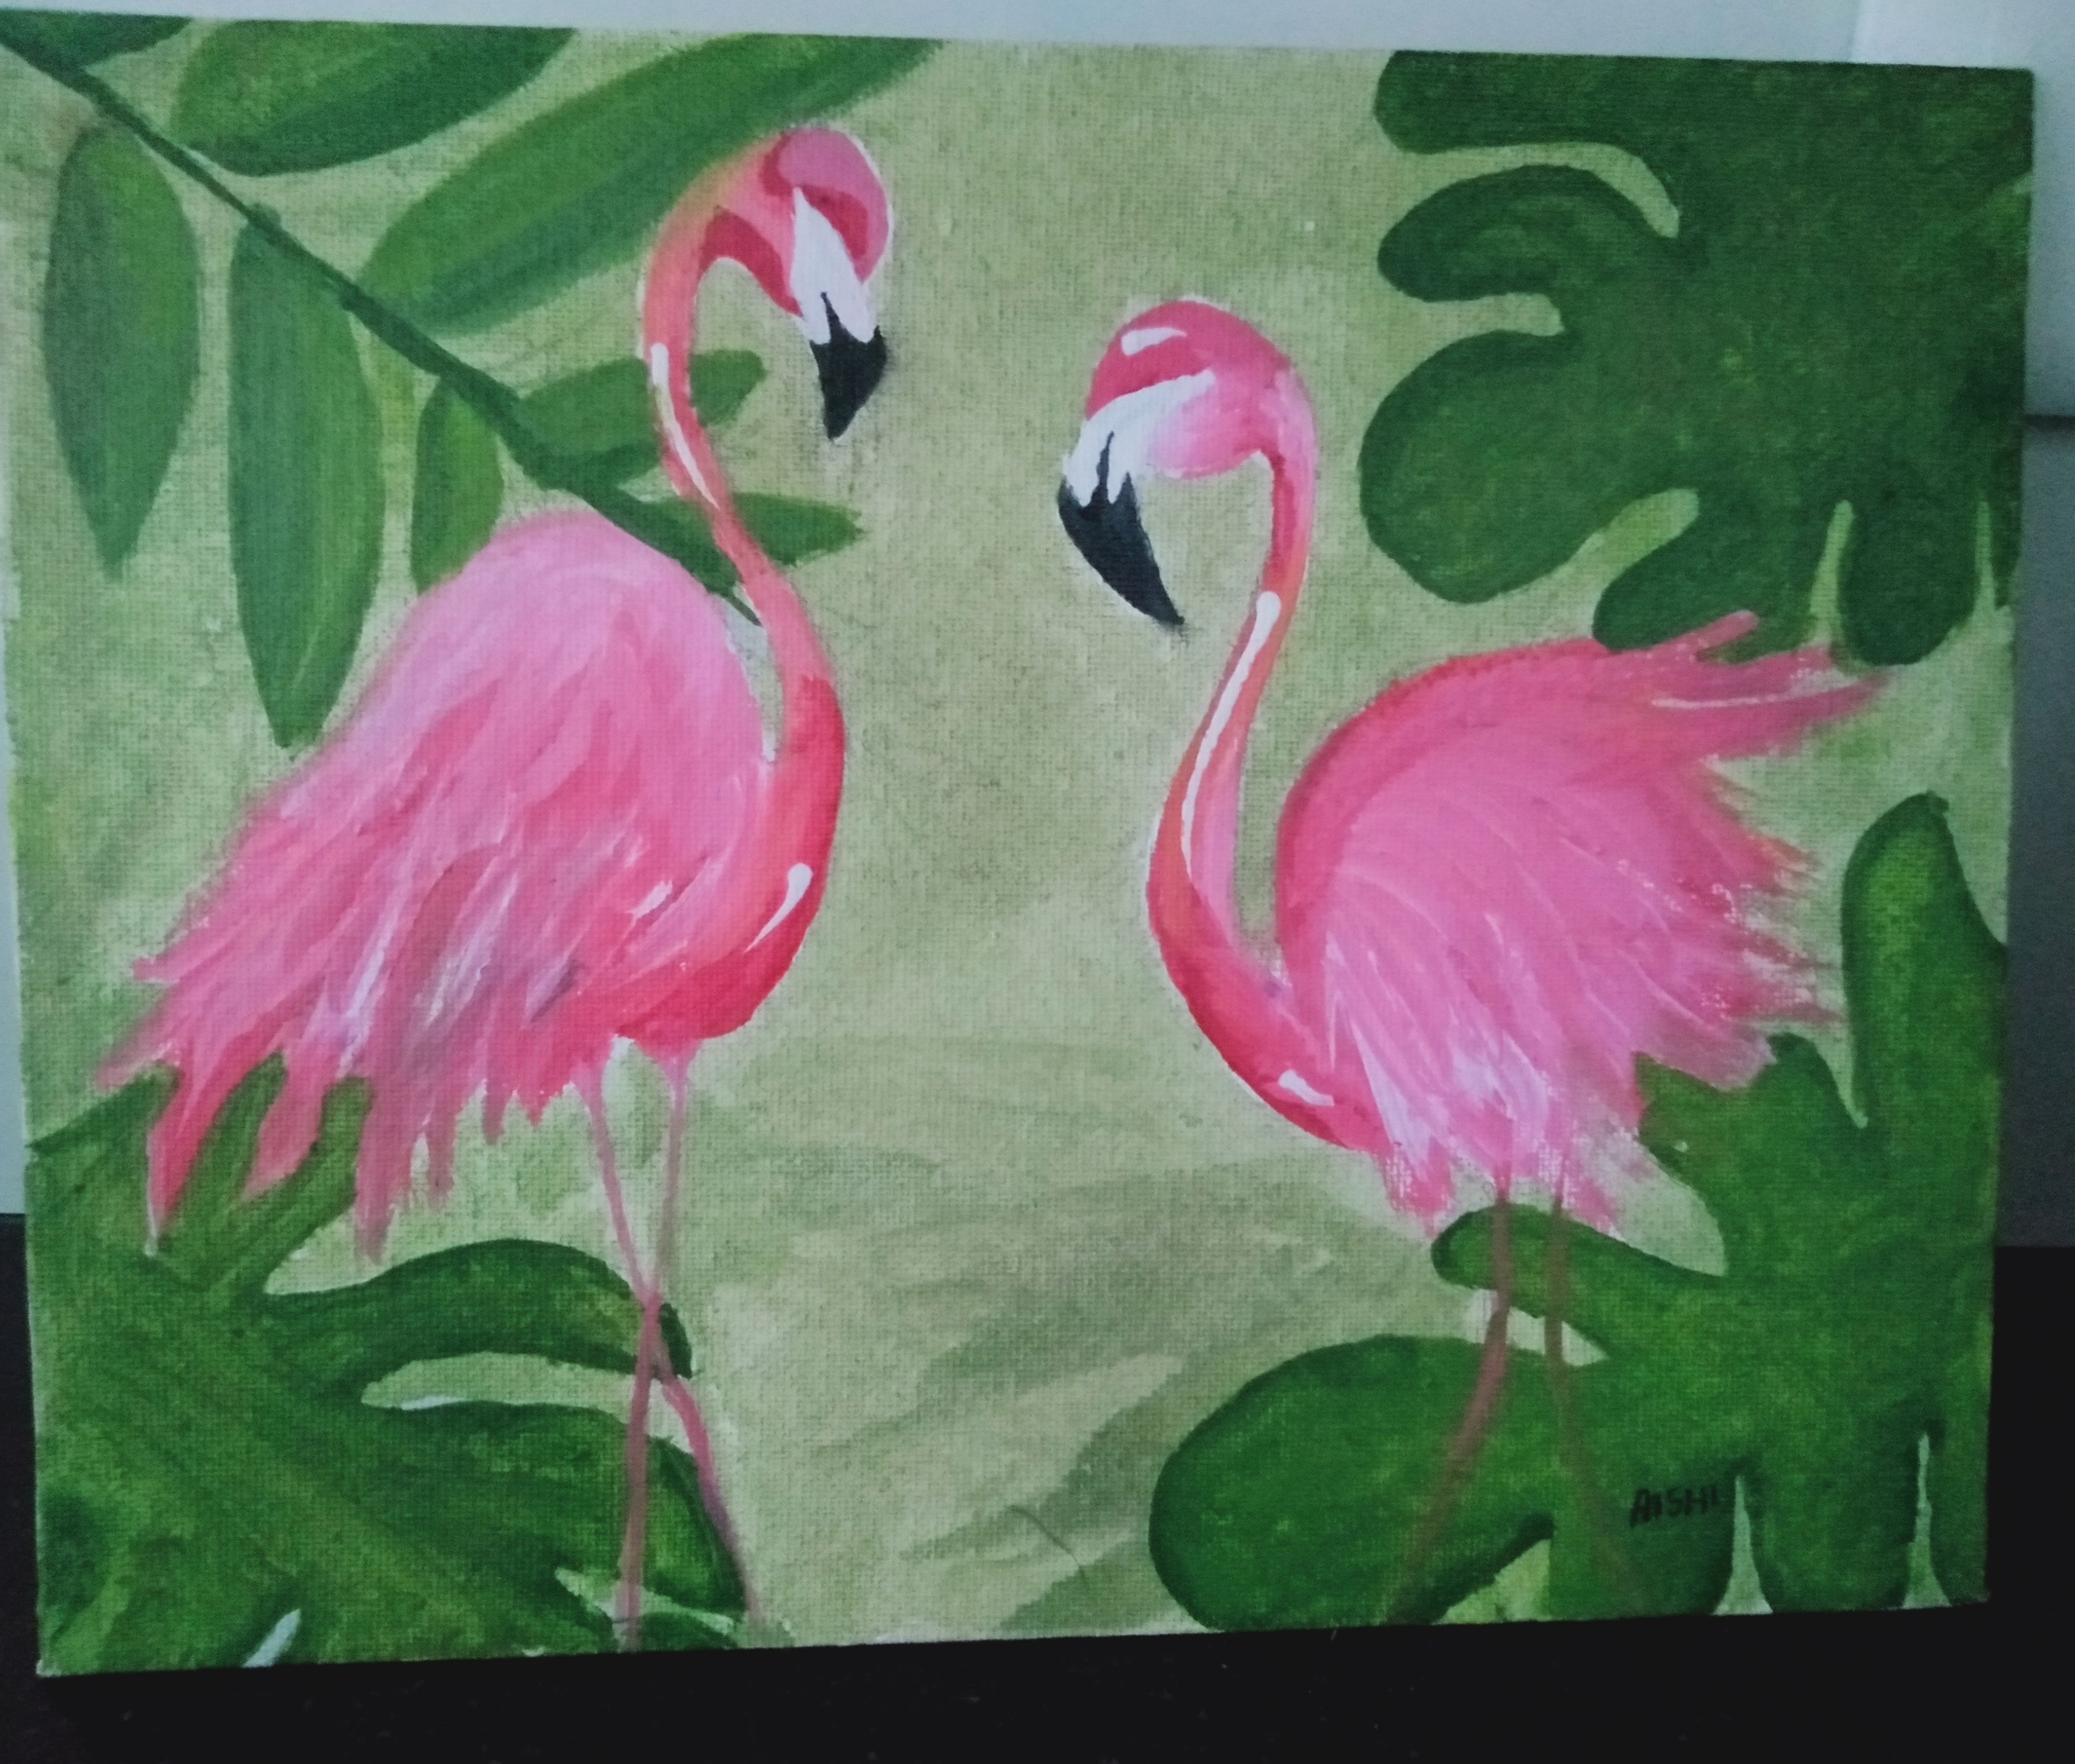 Aishi's Painting 'Flamingos- Mommy & Me'